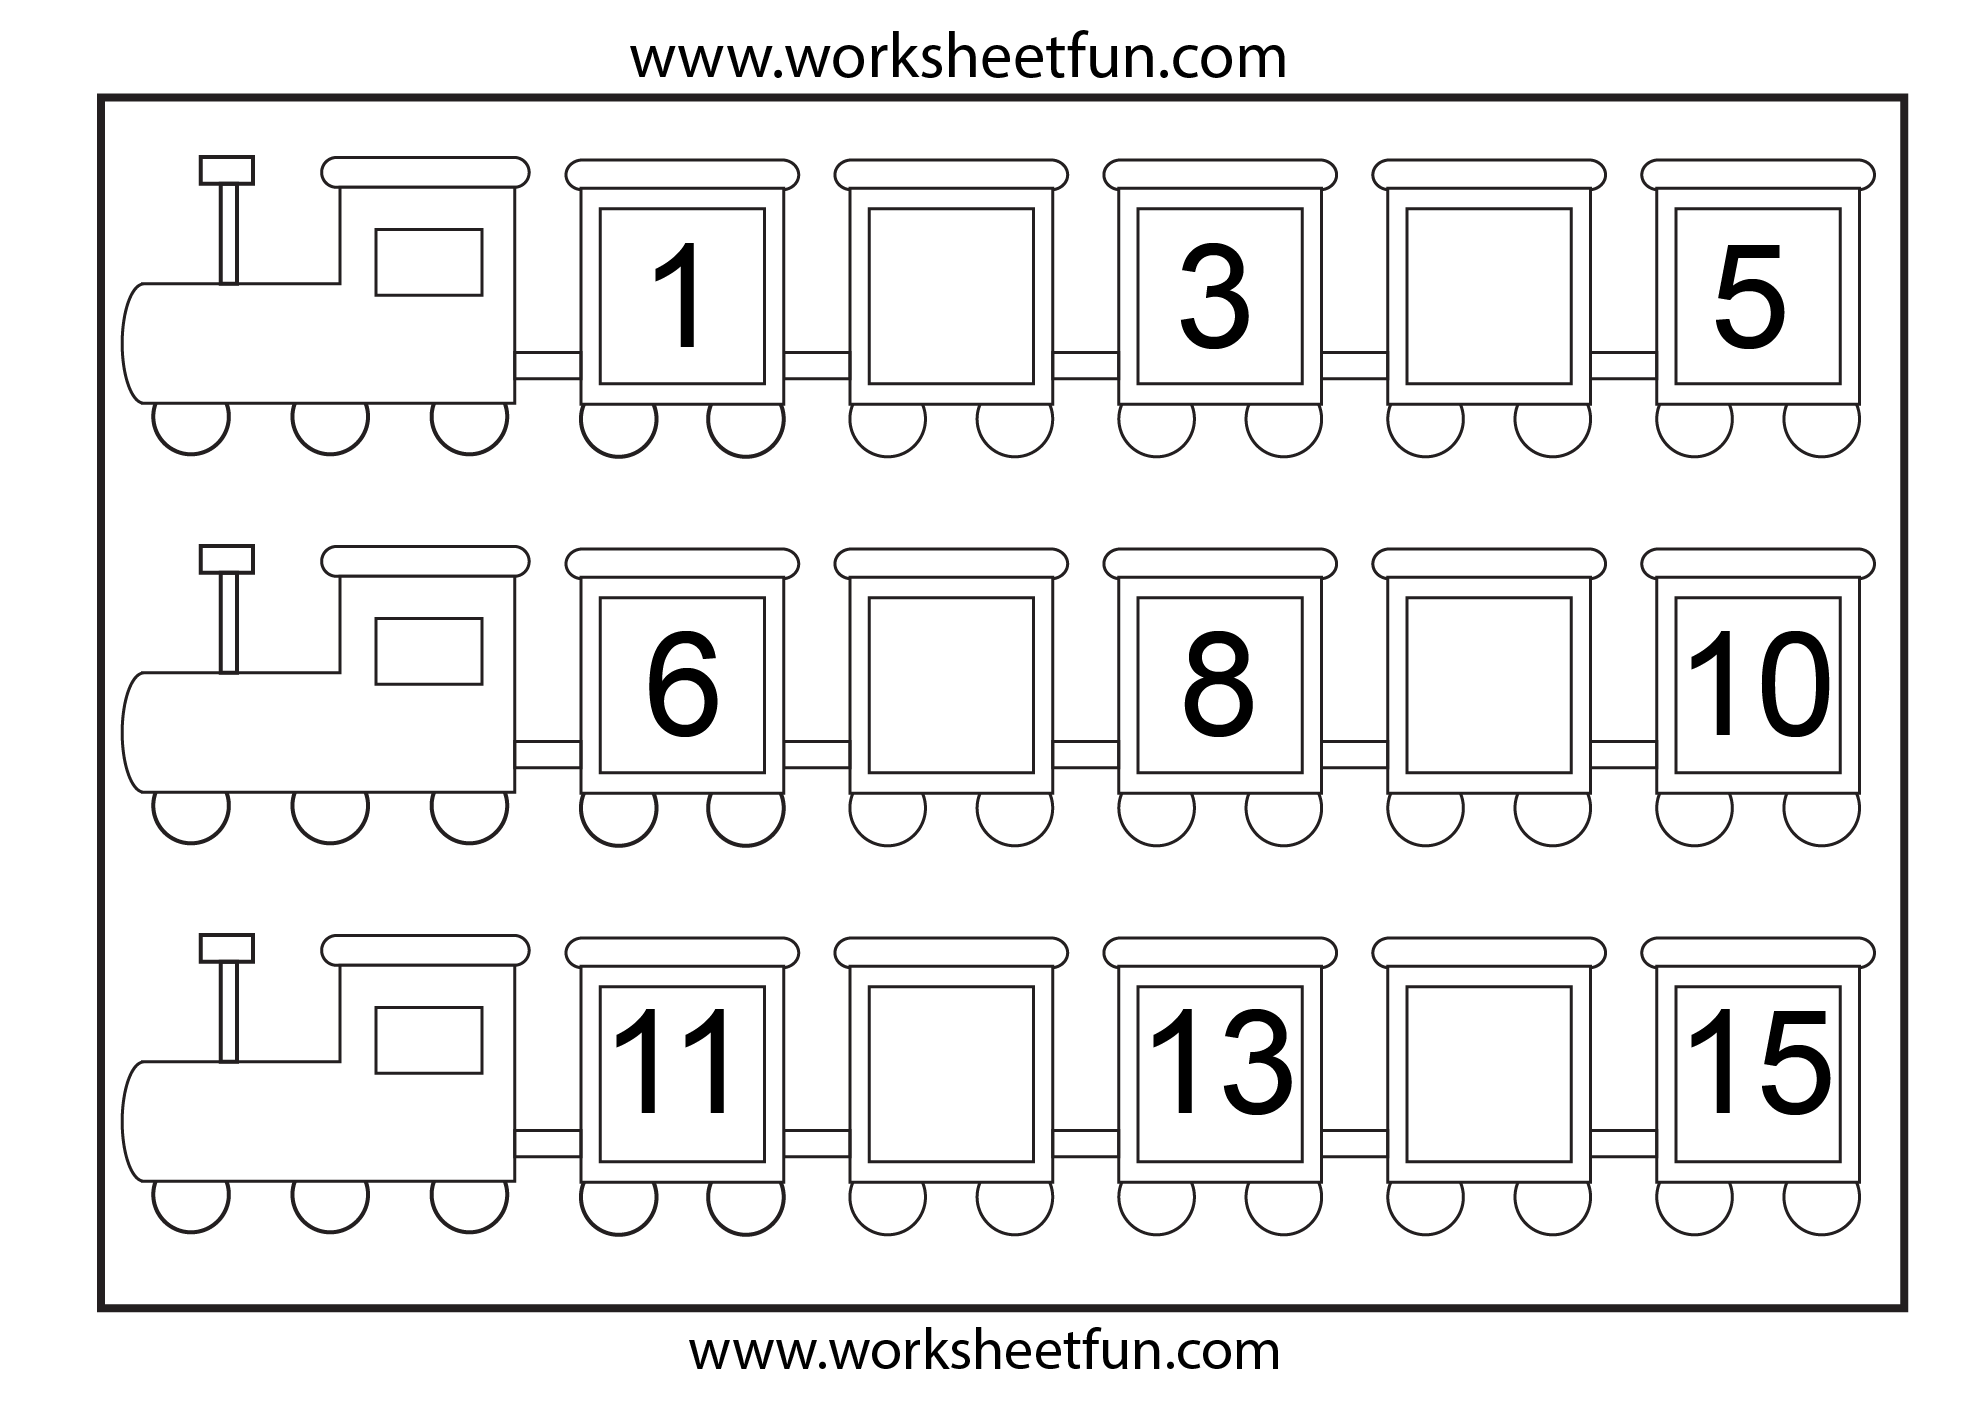 Worksheets Missing Number Worksheets worksheet 612792 missing numbers worksheets for kindergarten davezan kindergarten